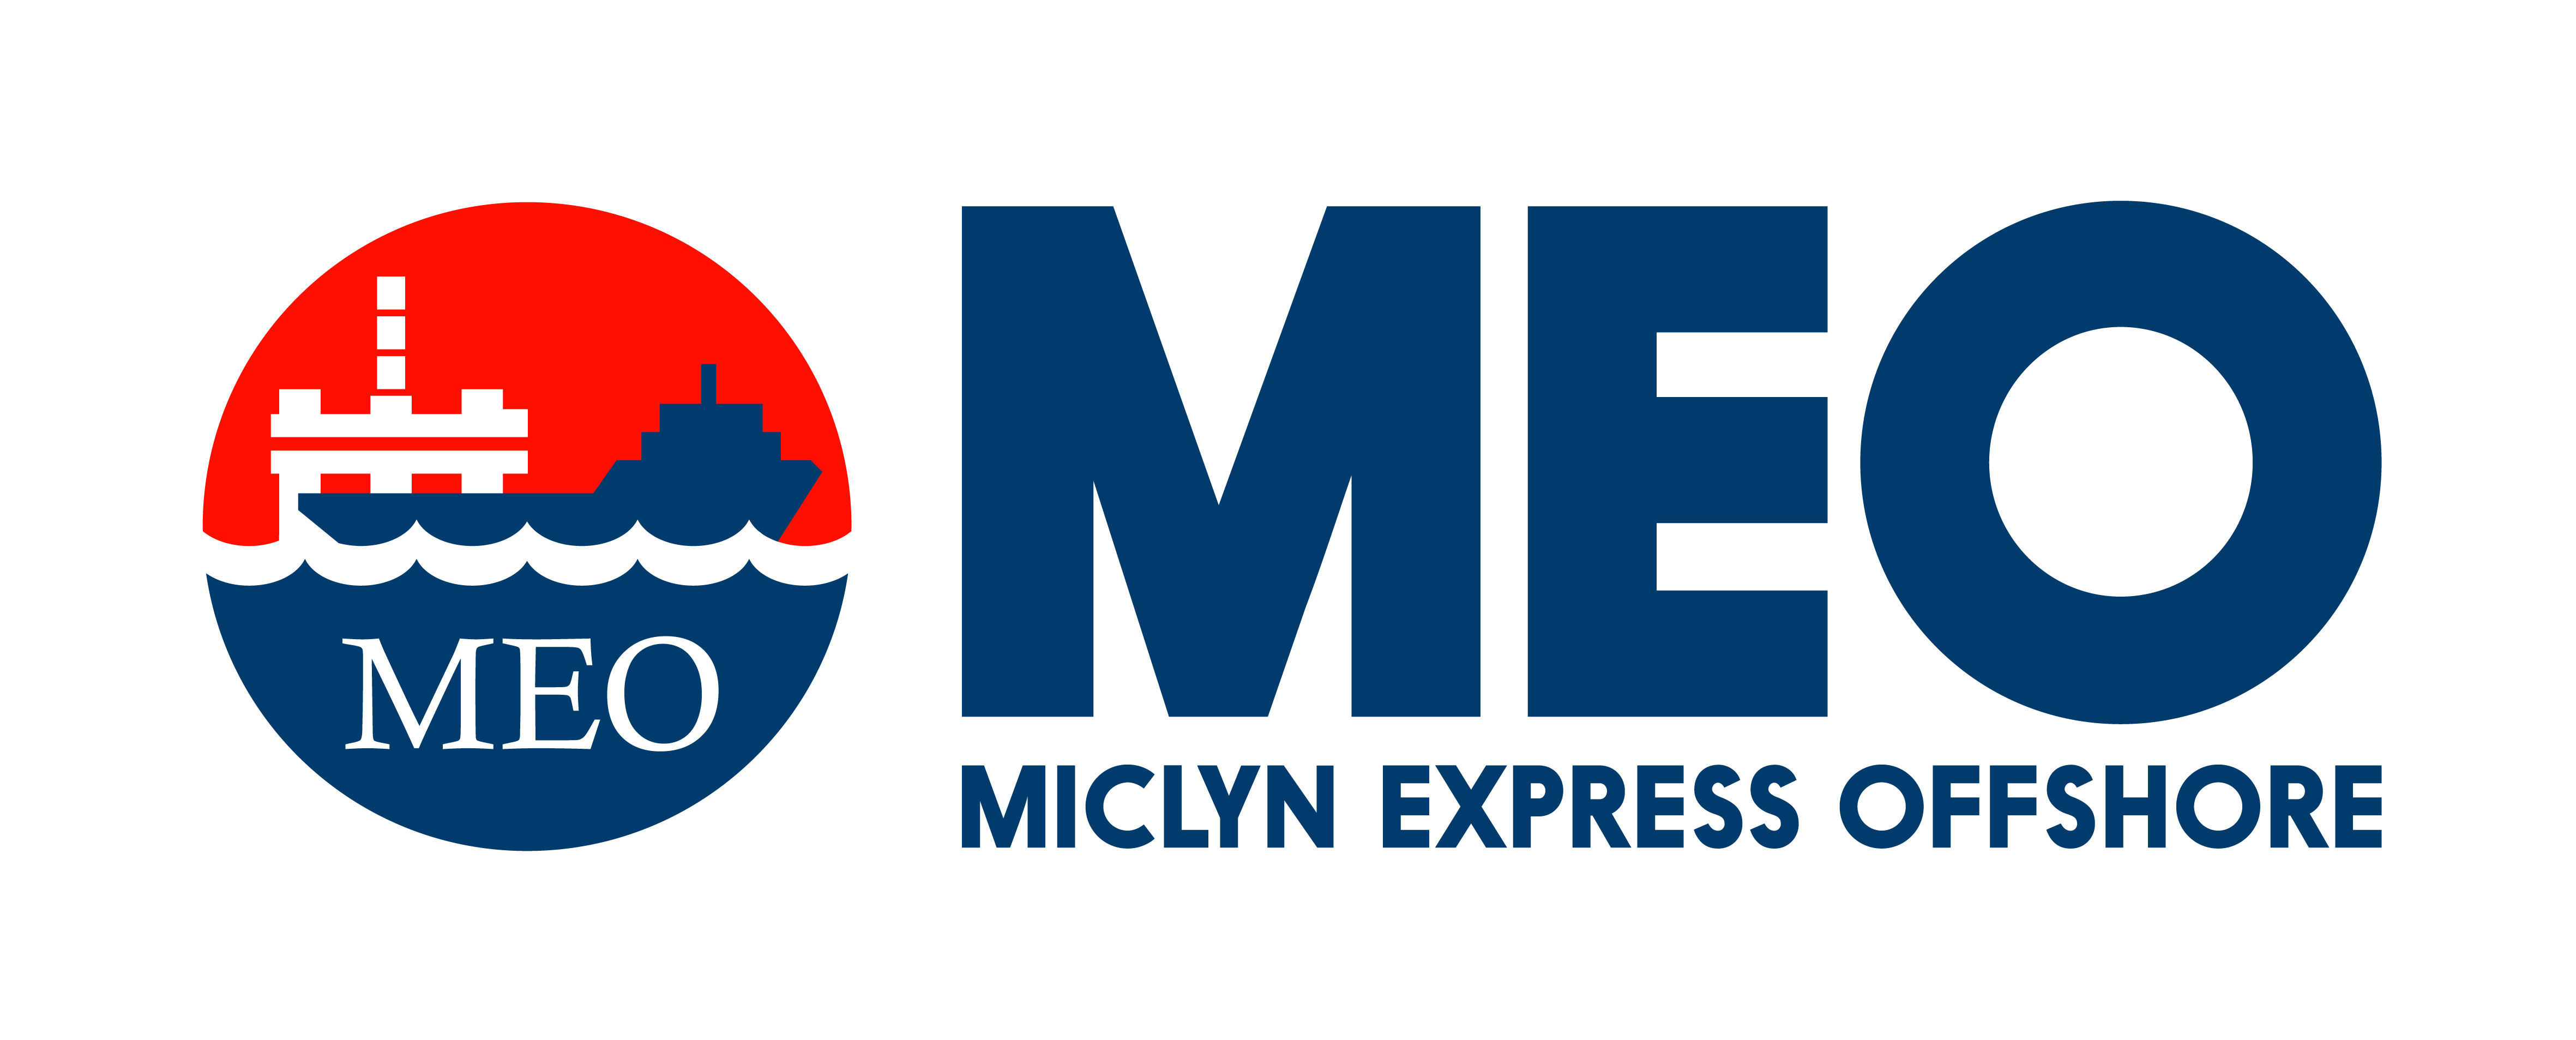 Careers - Miclyn Express Offshore